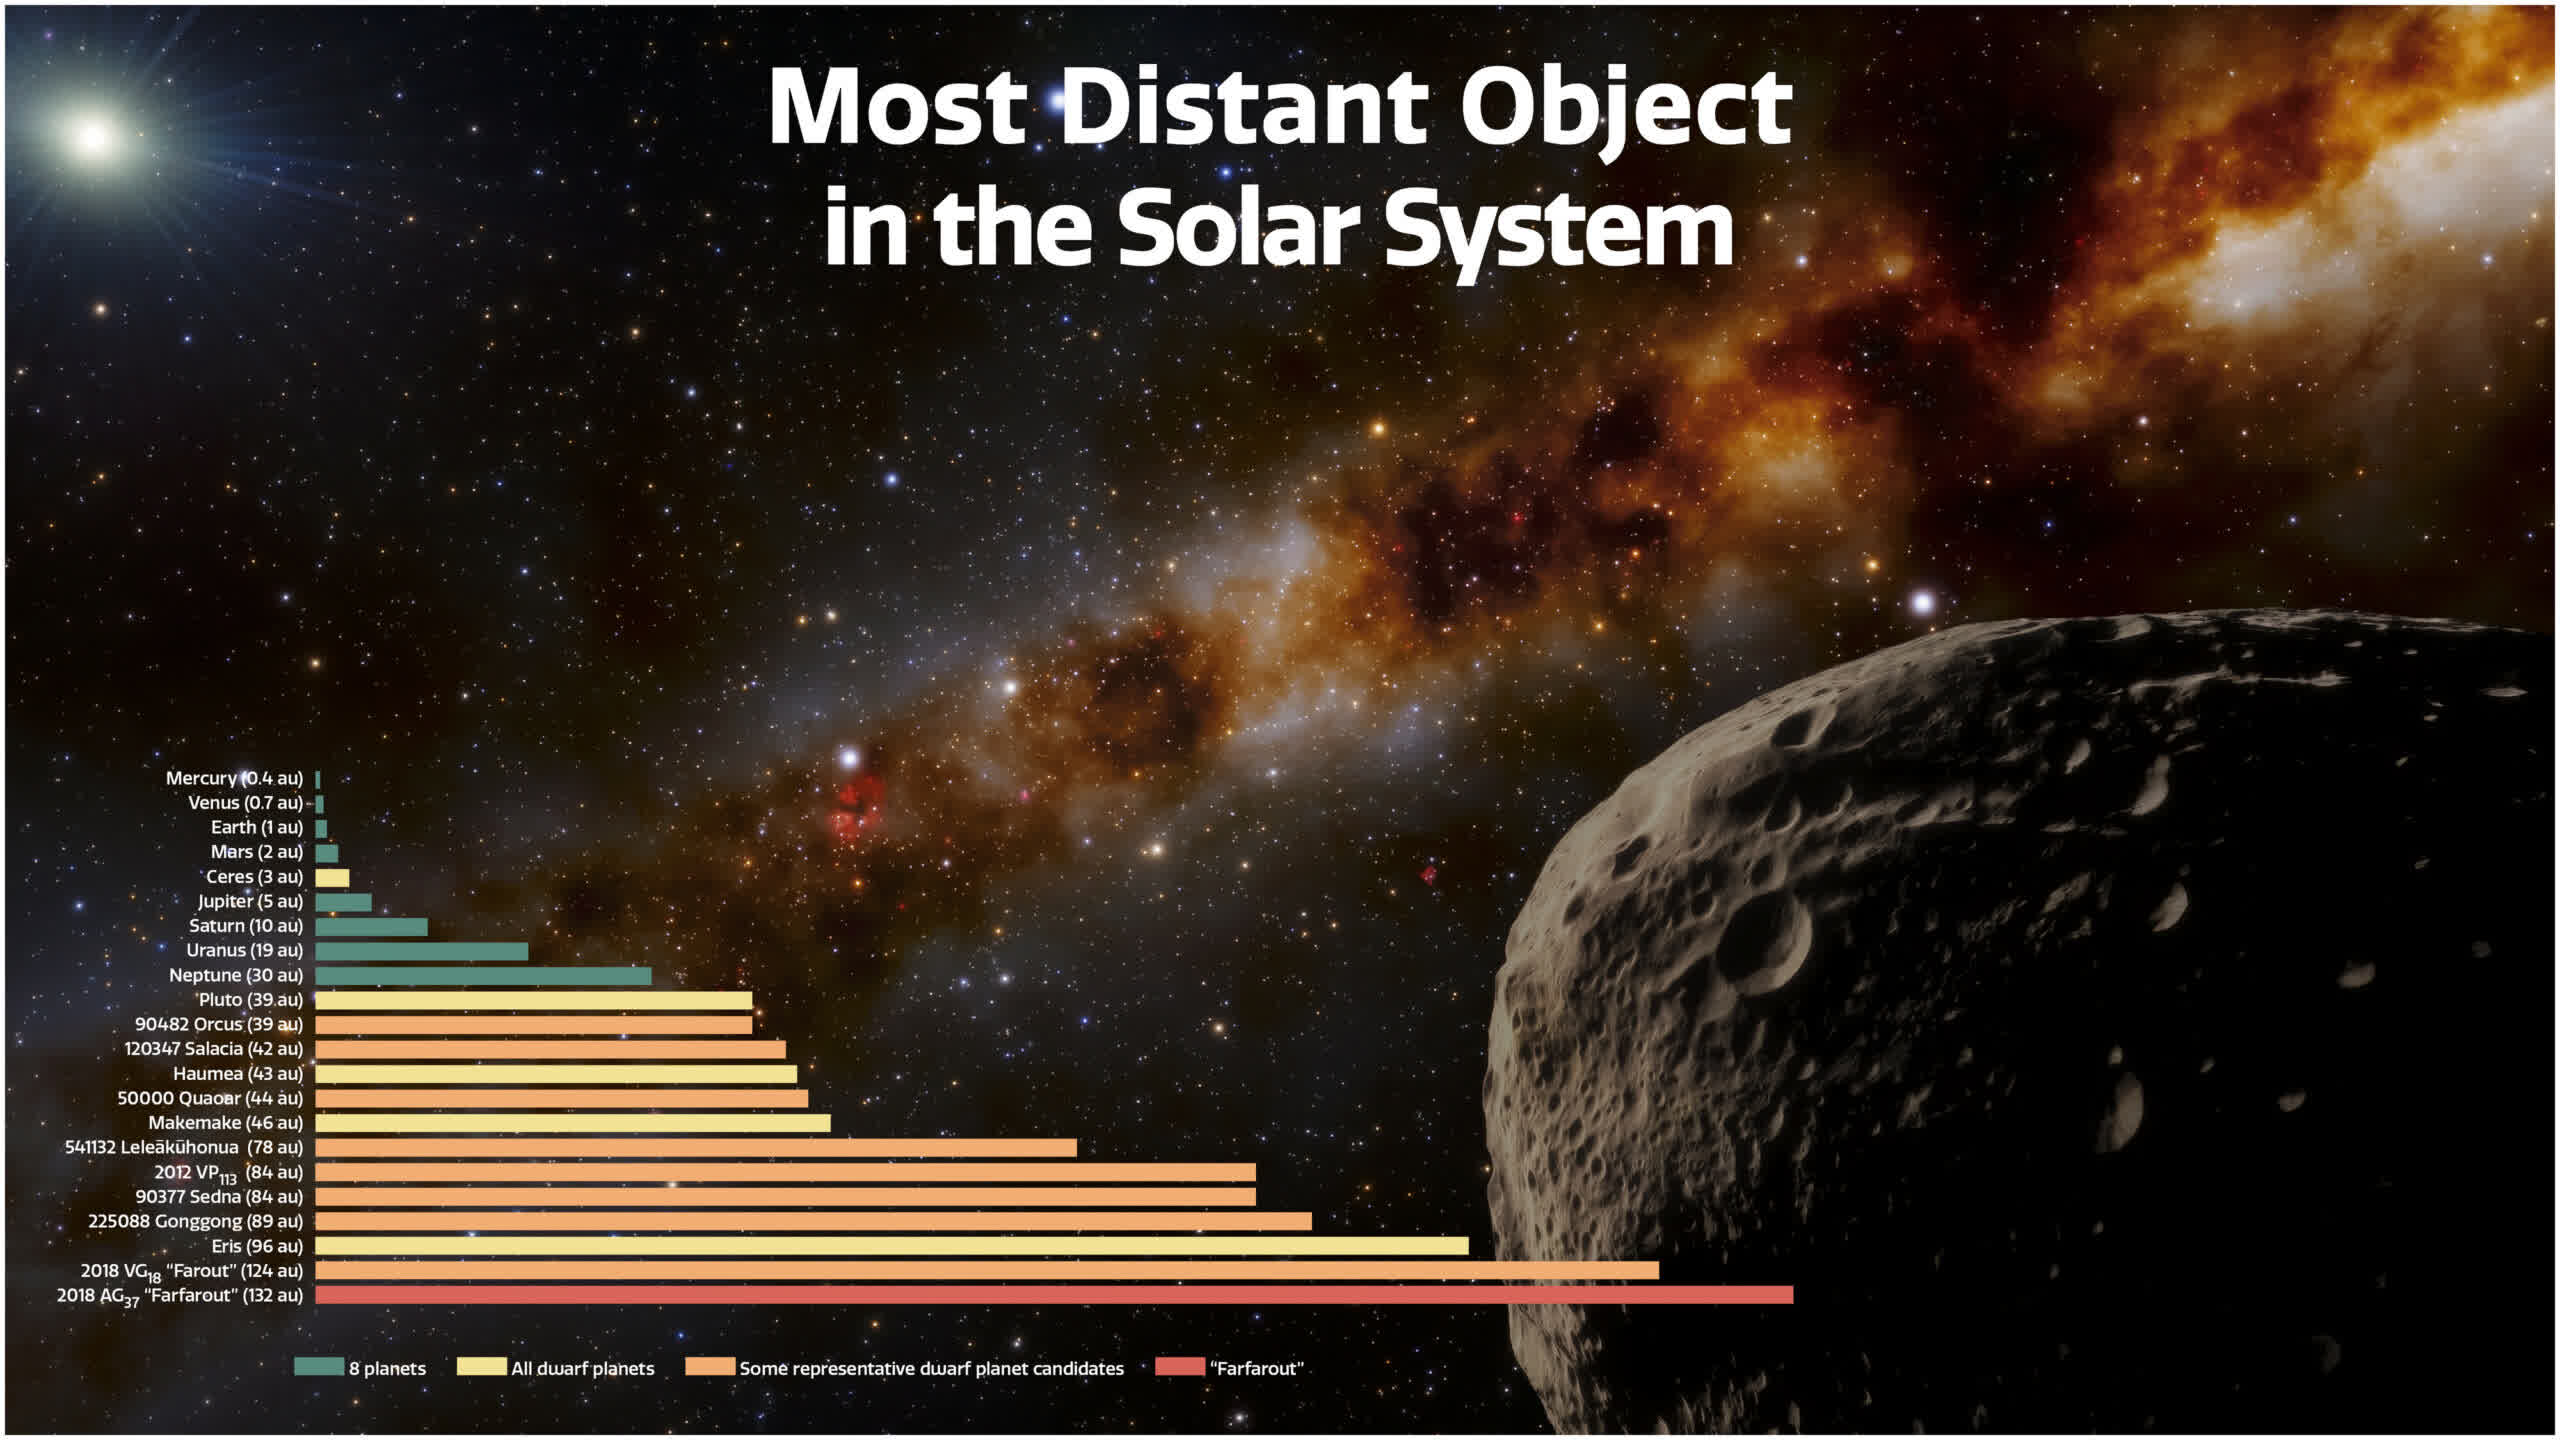 Scientists confirm the most distant object in our solar system